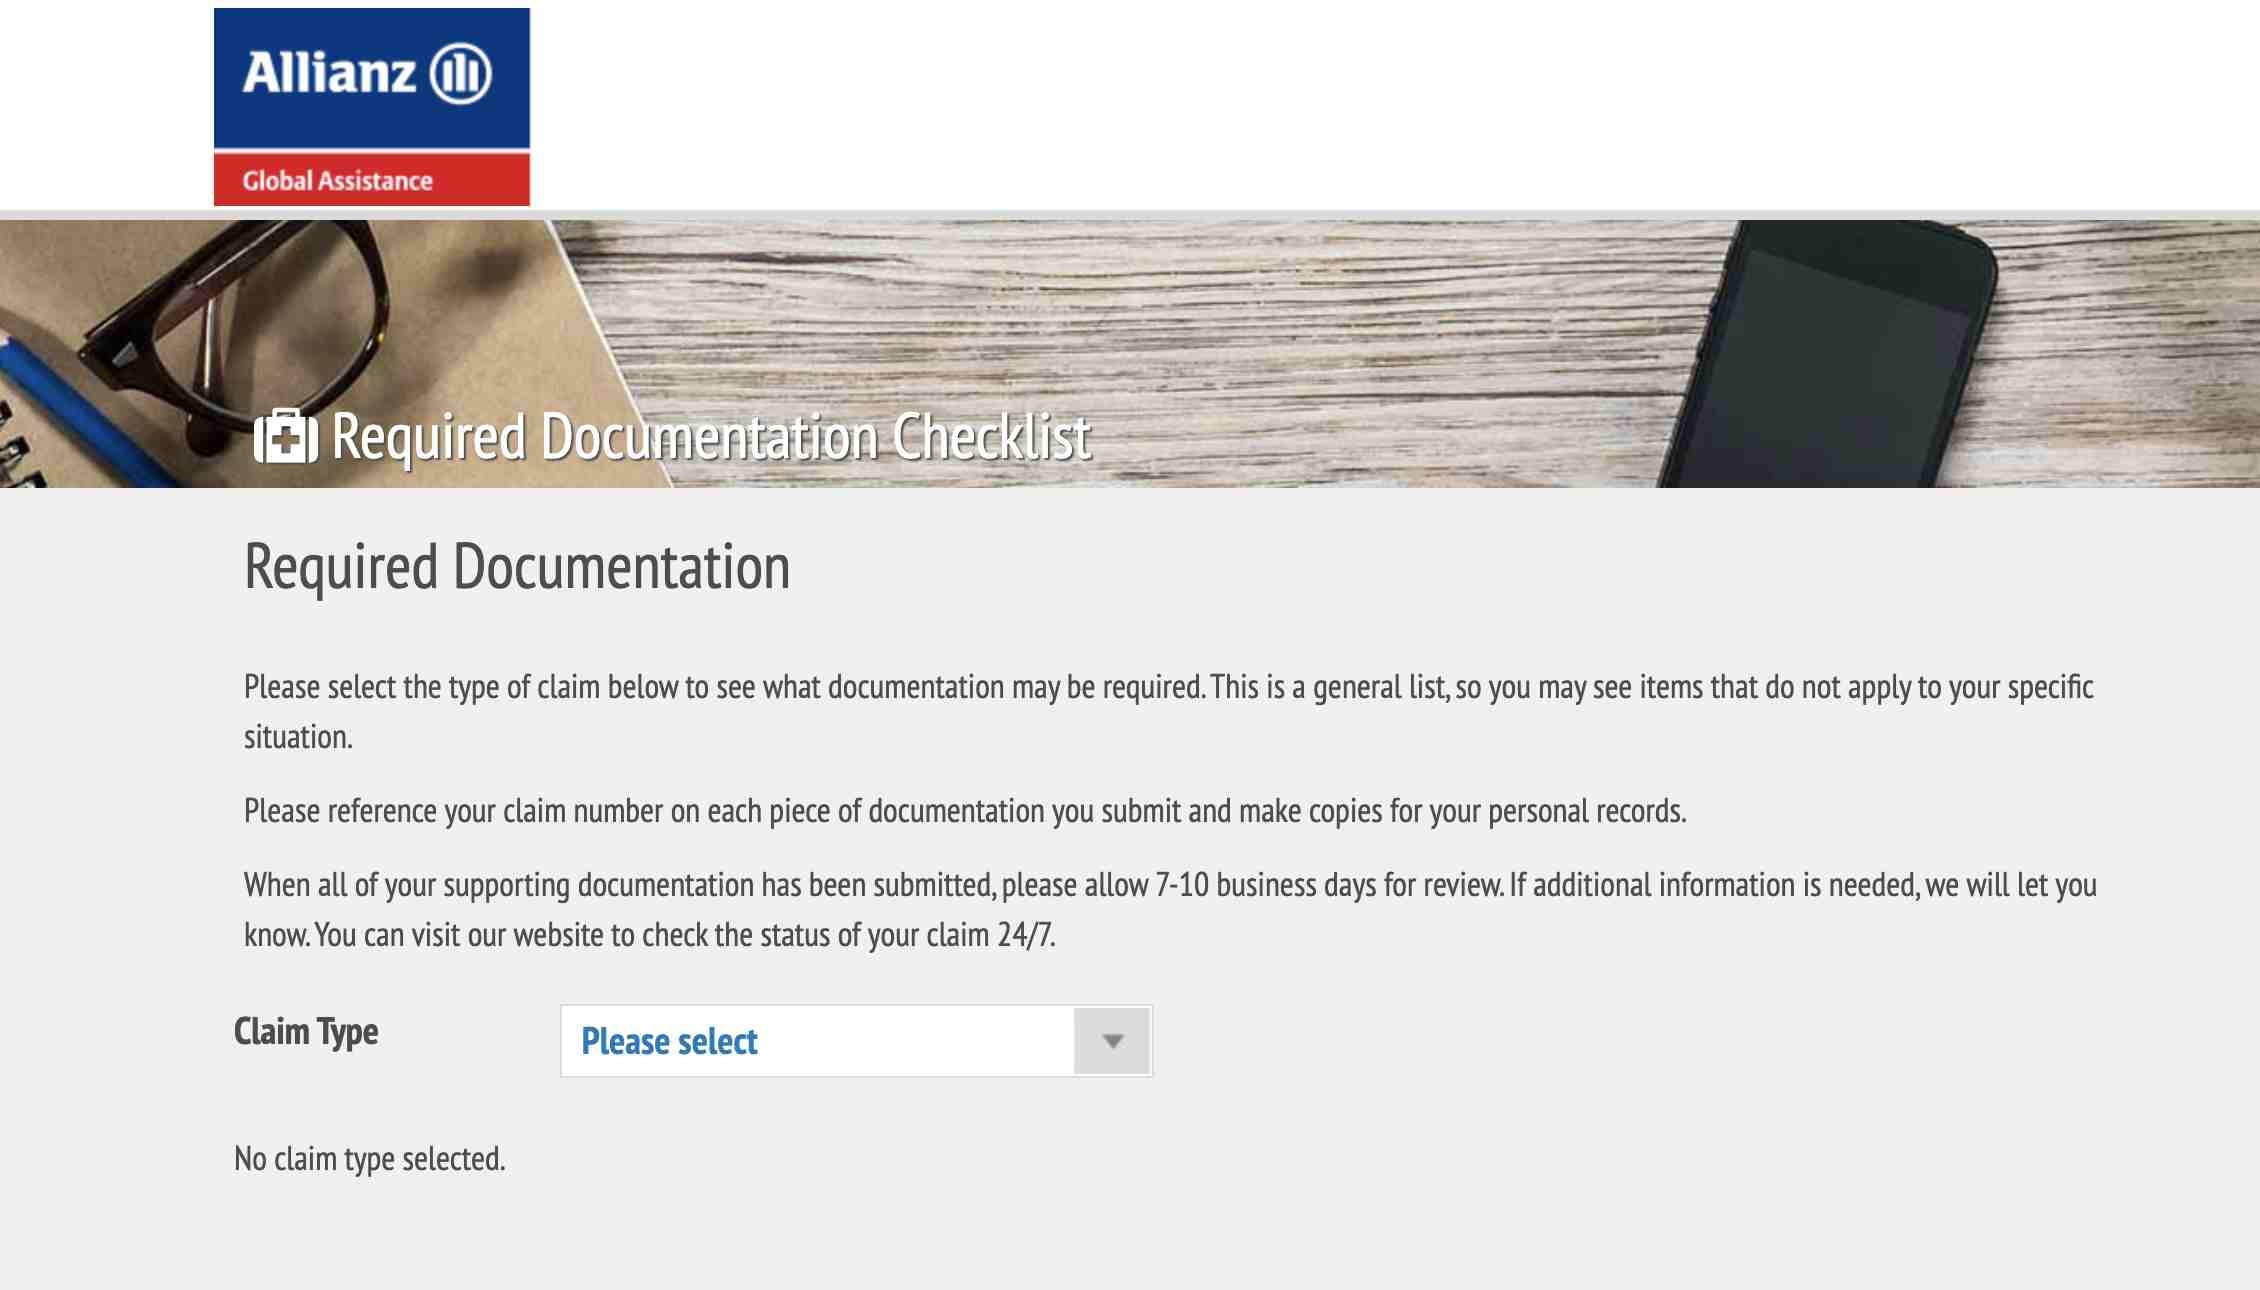 Allianz Required Documentation Checklist